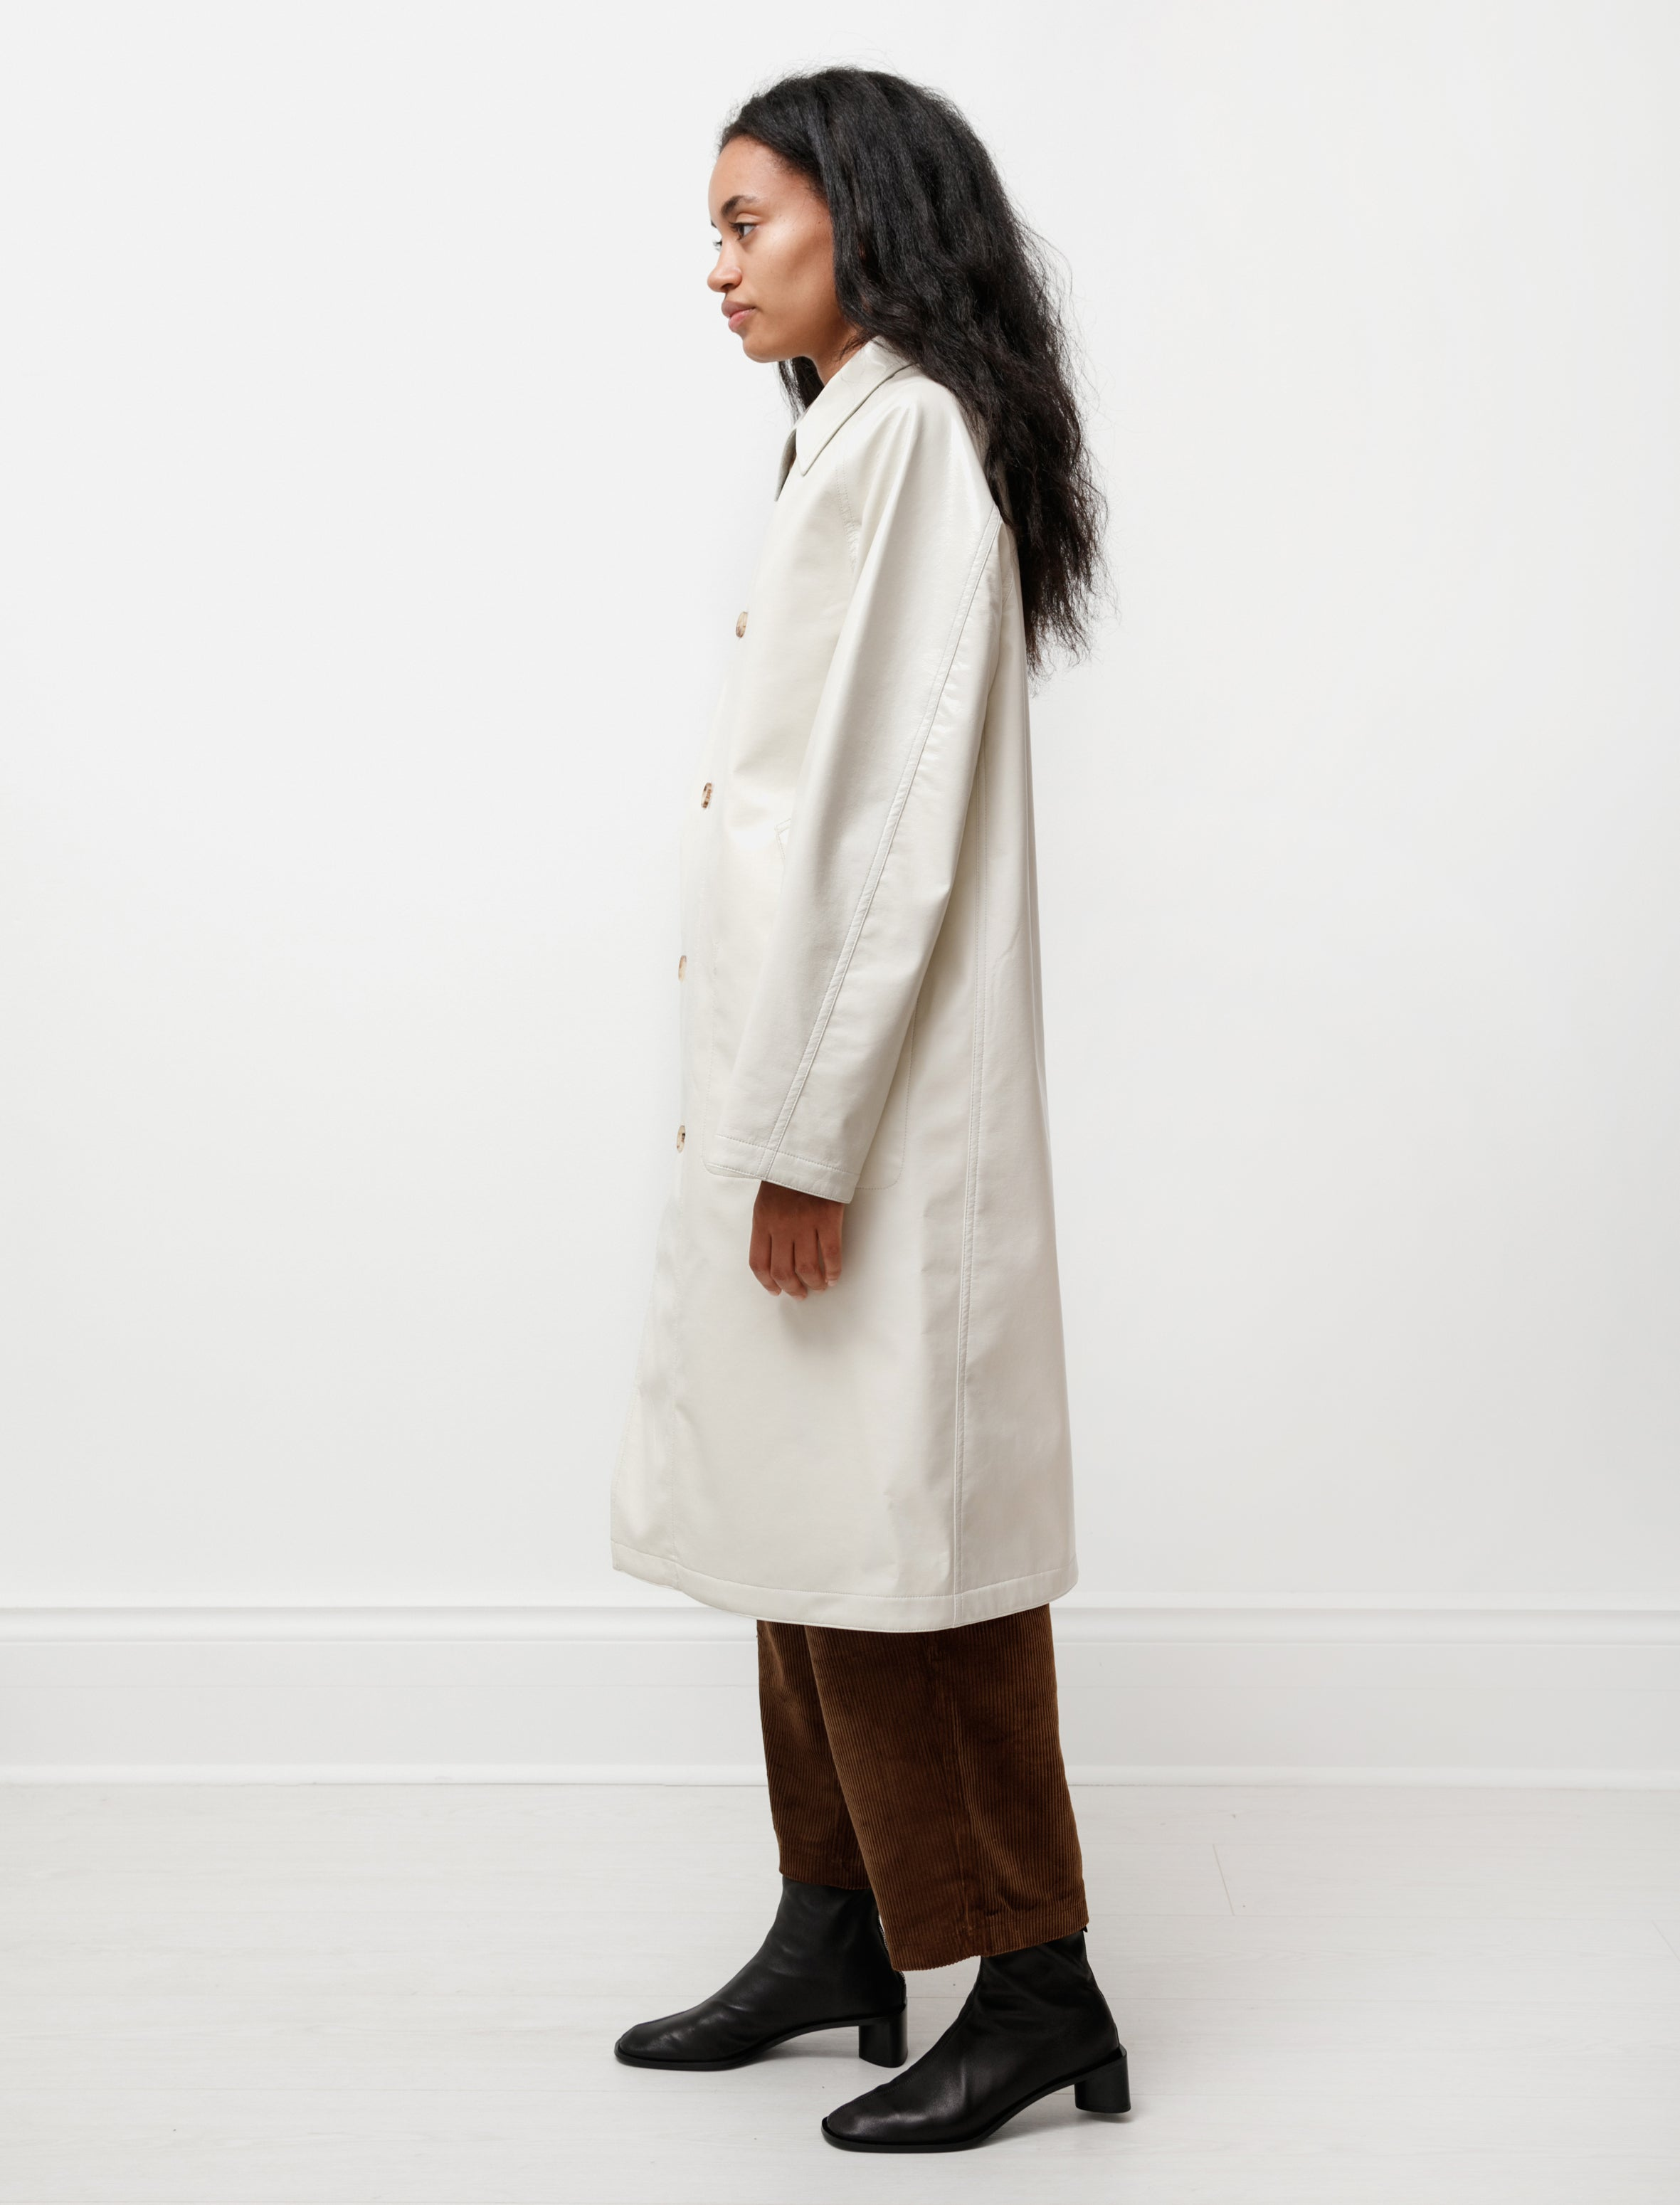 Auralee Wool Cashmere Laminate Coat Ivory Top Gray